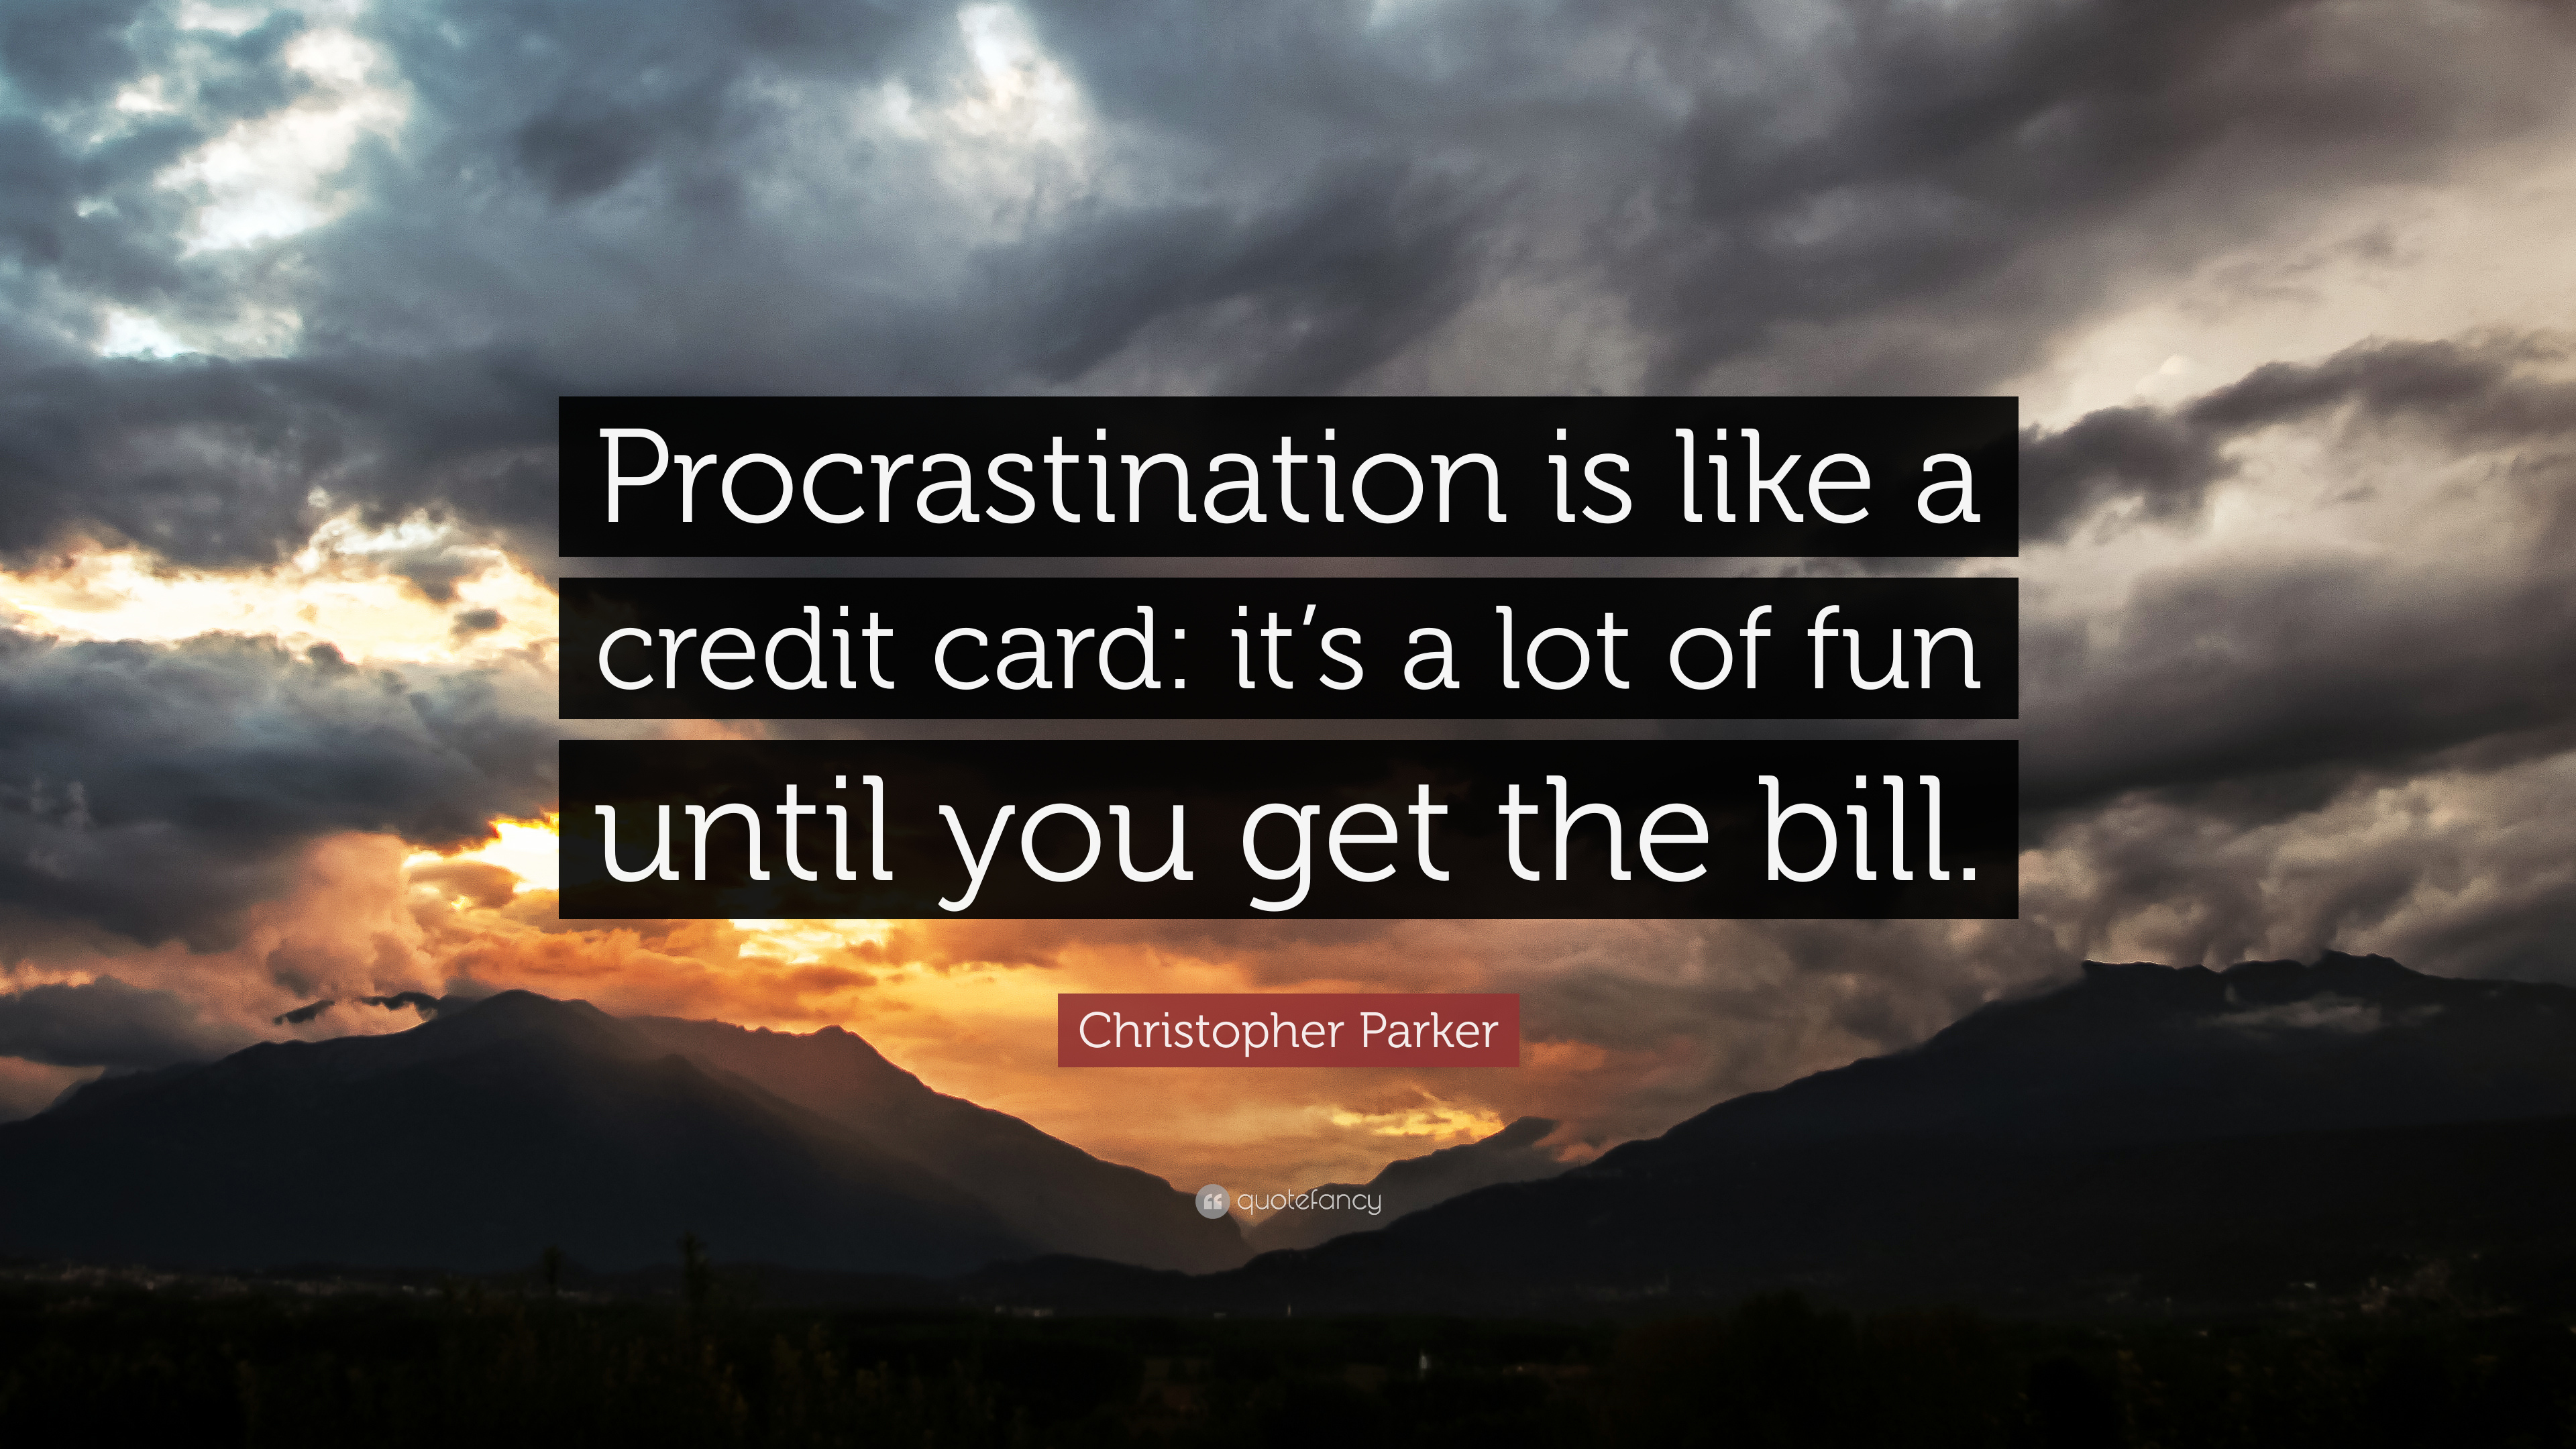 """""""Procrastination is like a credit card: it's a lot of fun until you get the bill."""" Christopher Parker (3840×2160)"""